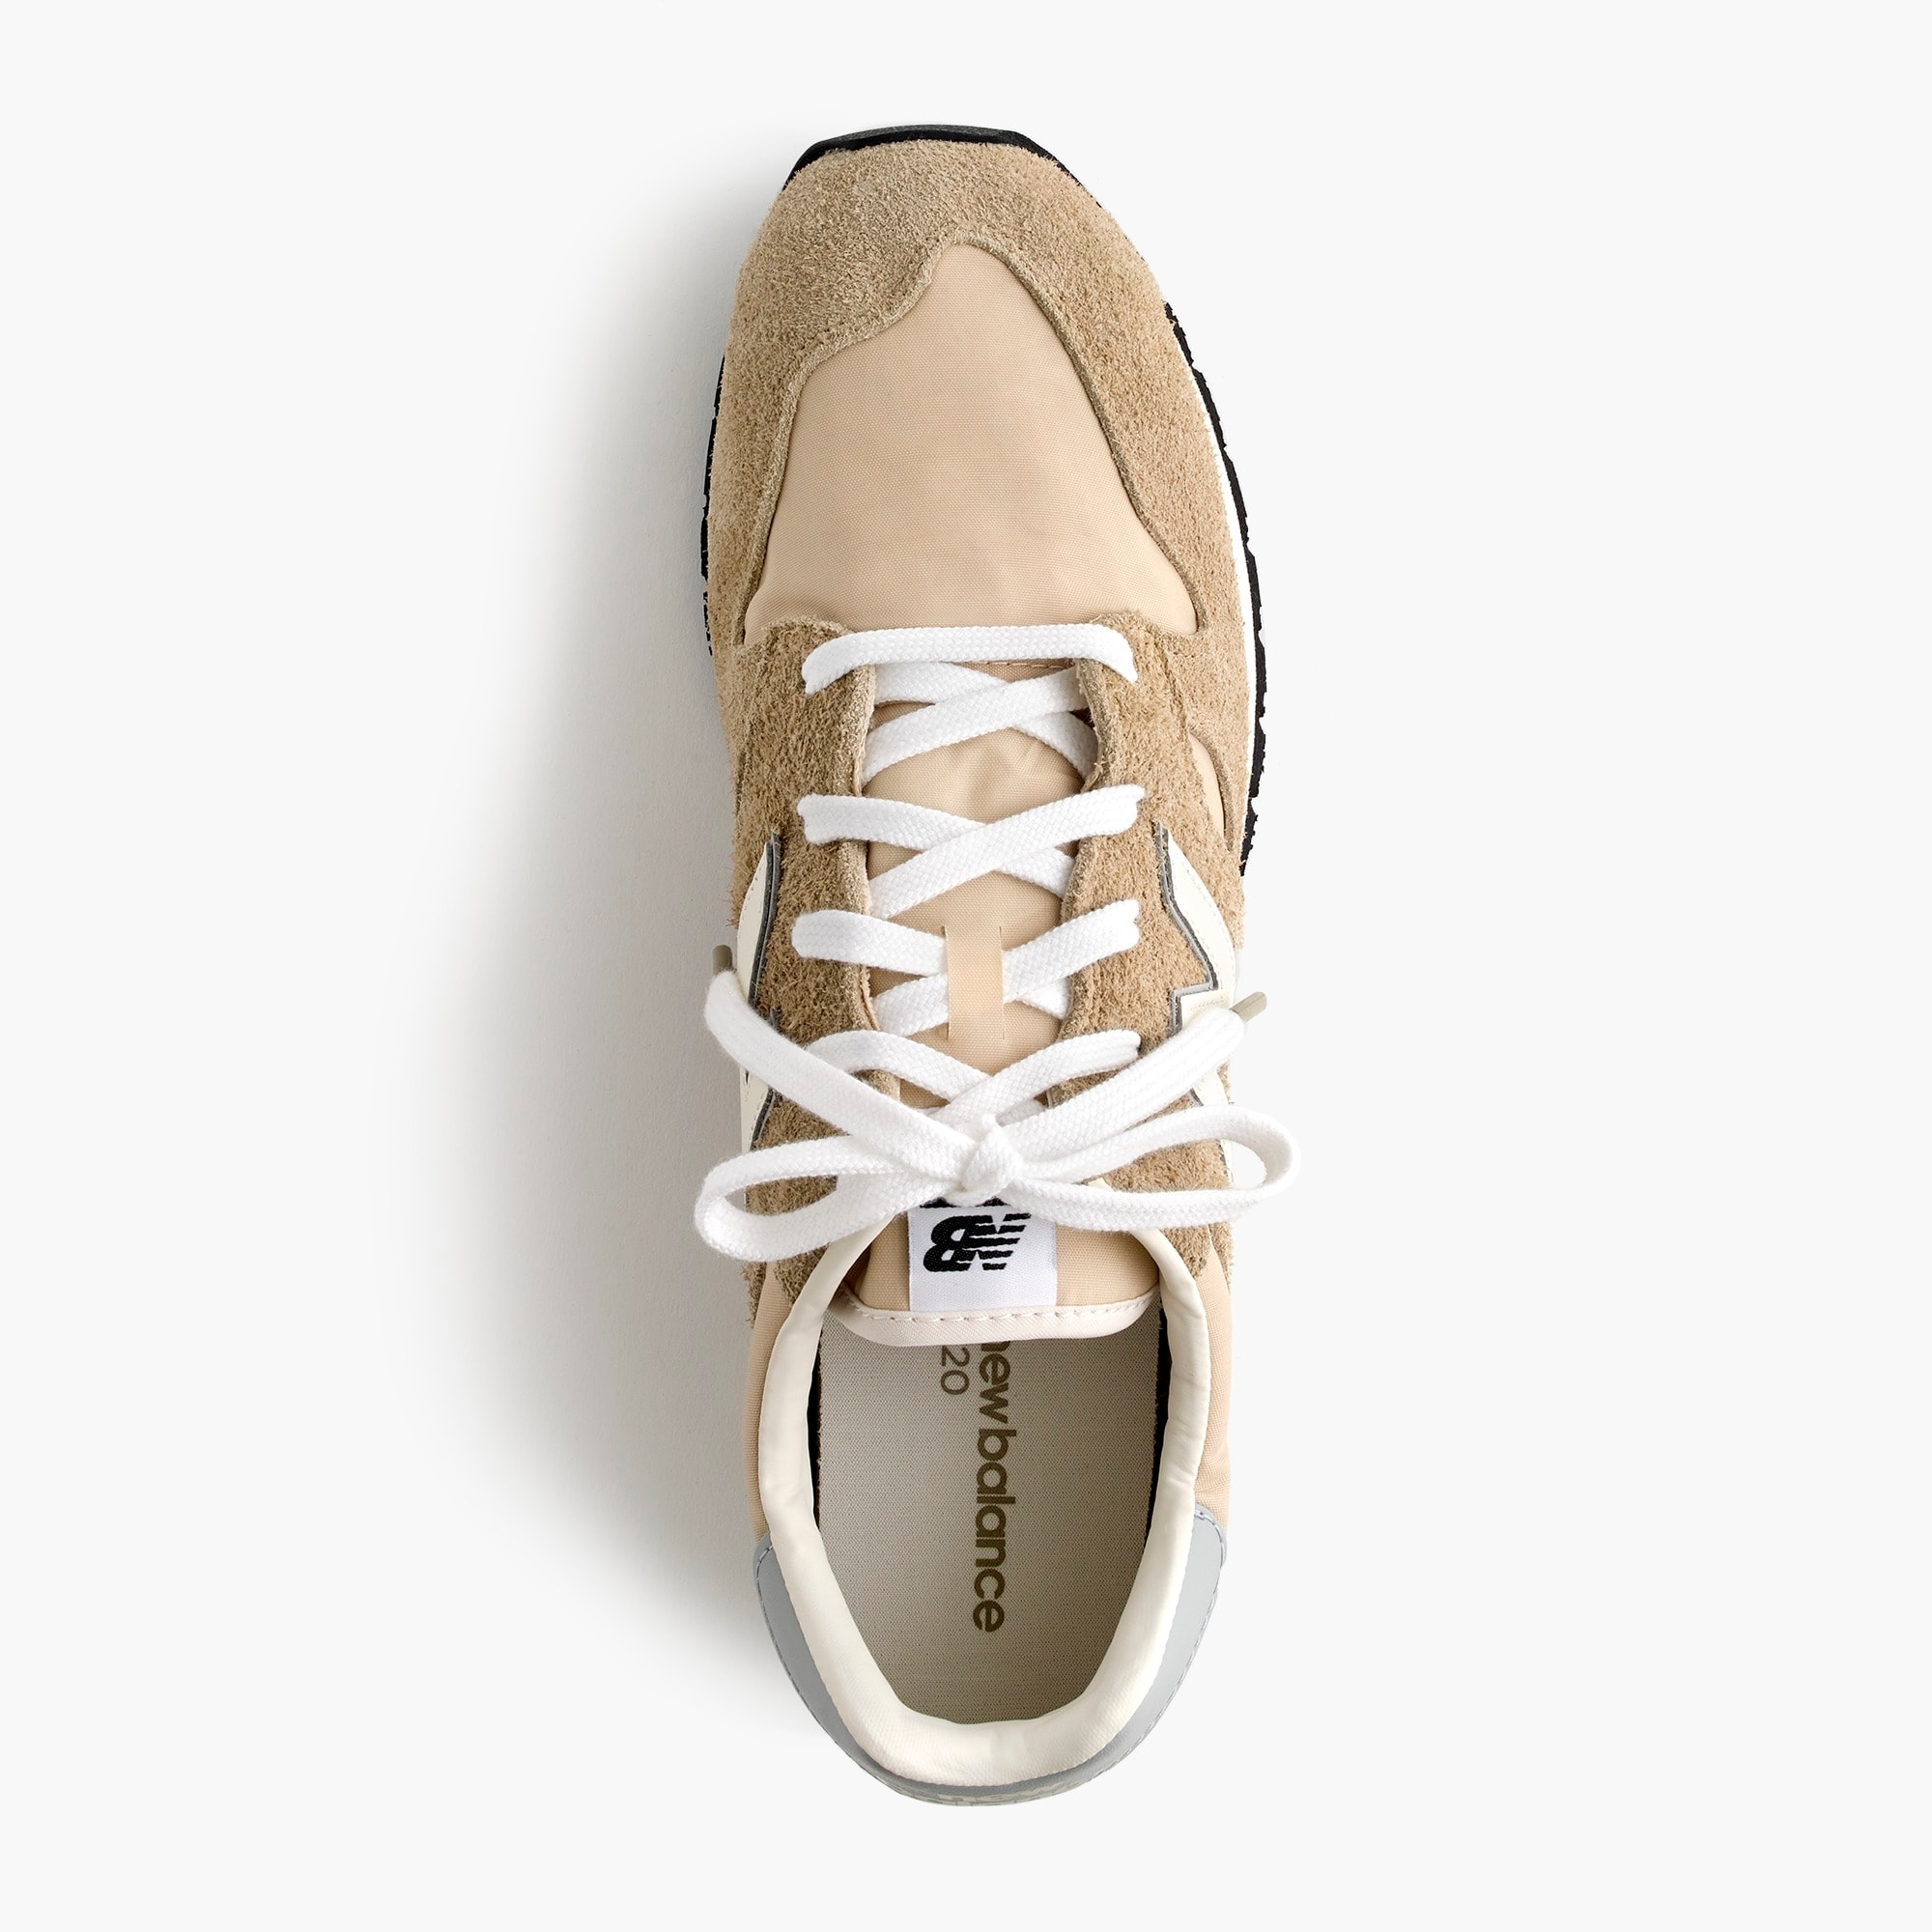 Image 2 for New Balance® for J.Crew 520 sneakers in hairy suede